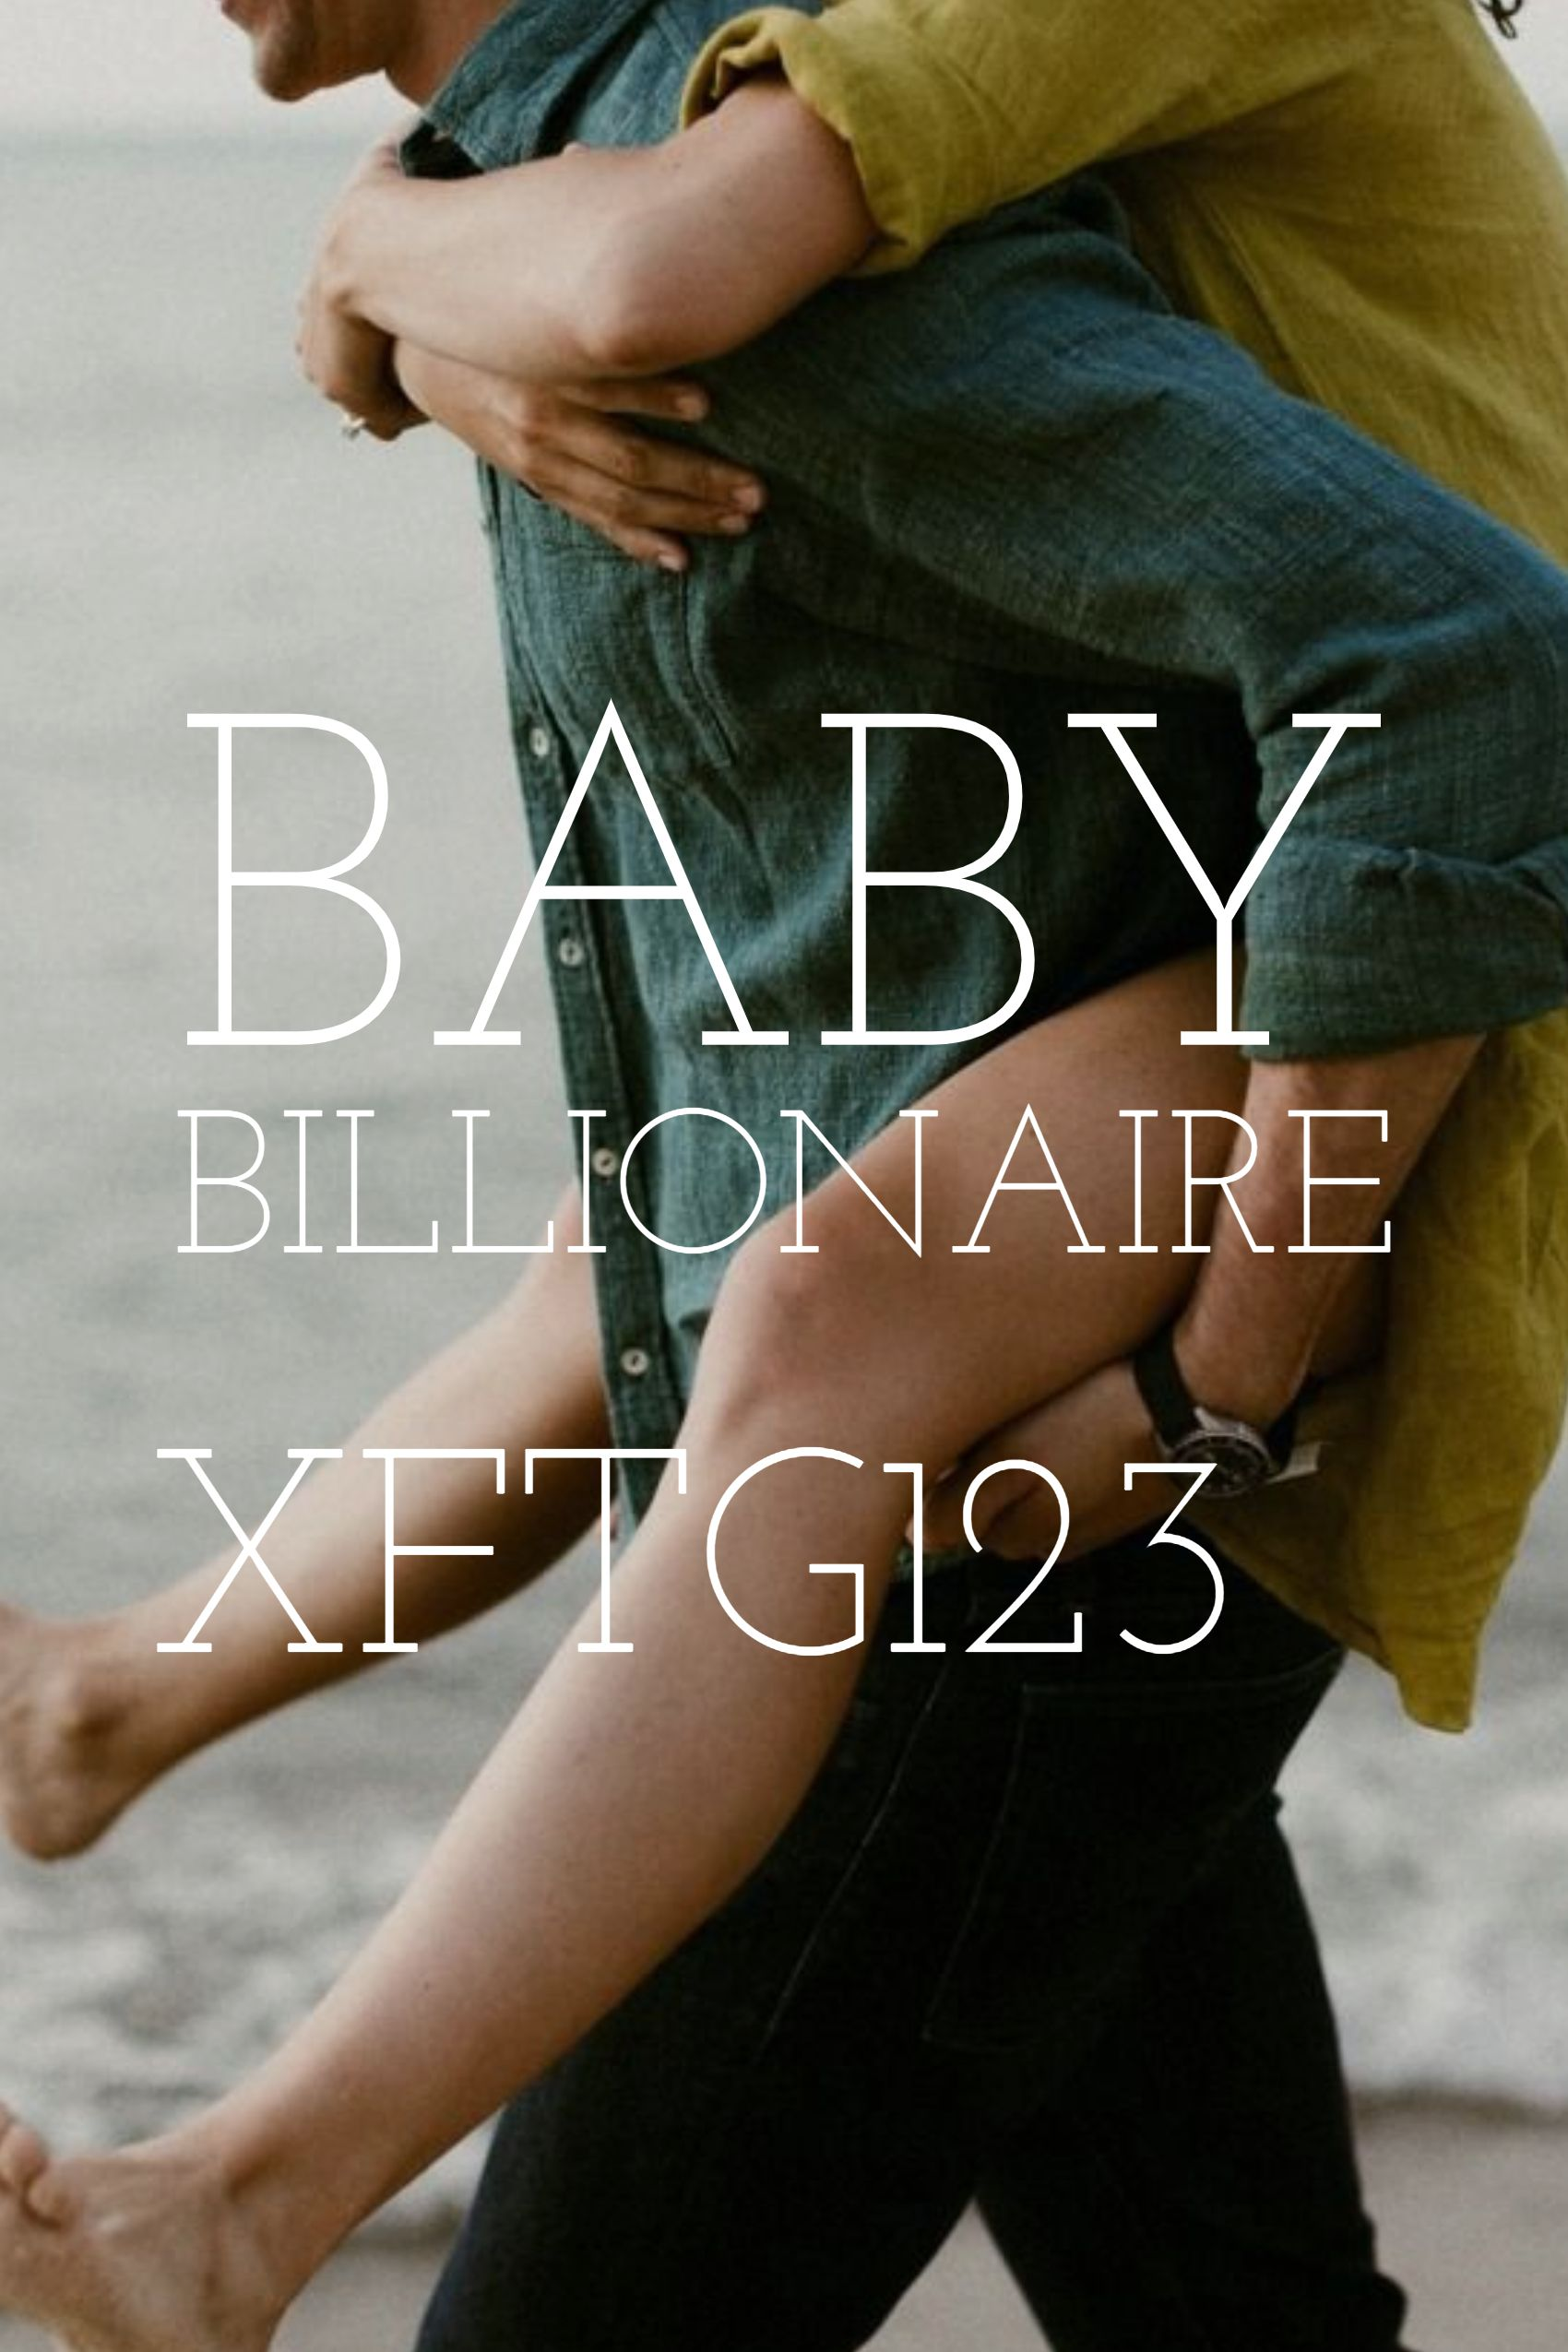 Baby Billionaire Fanmade Cover #2 | My Fanmade Covers